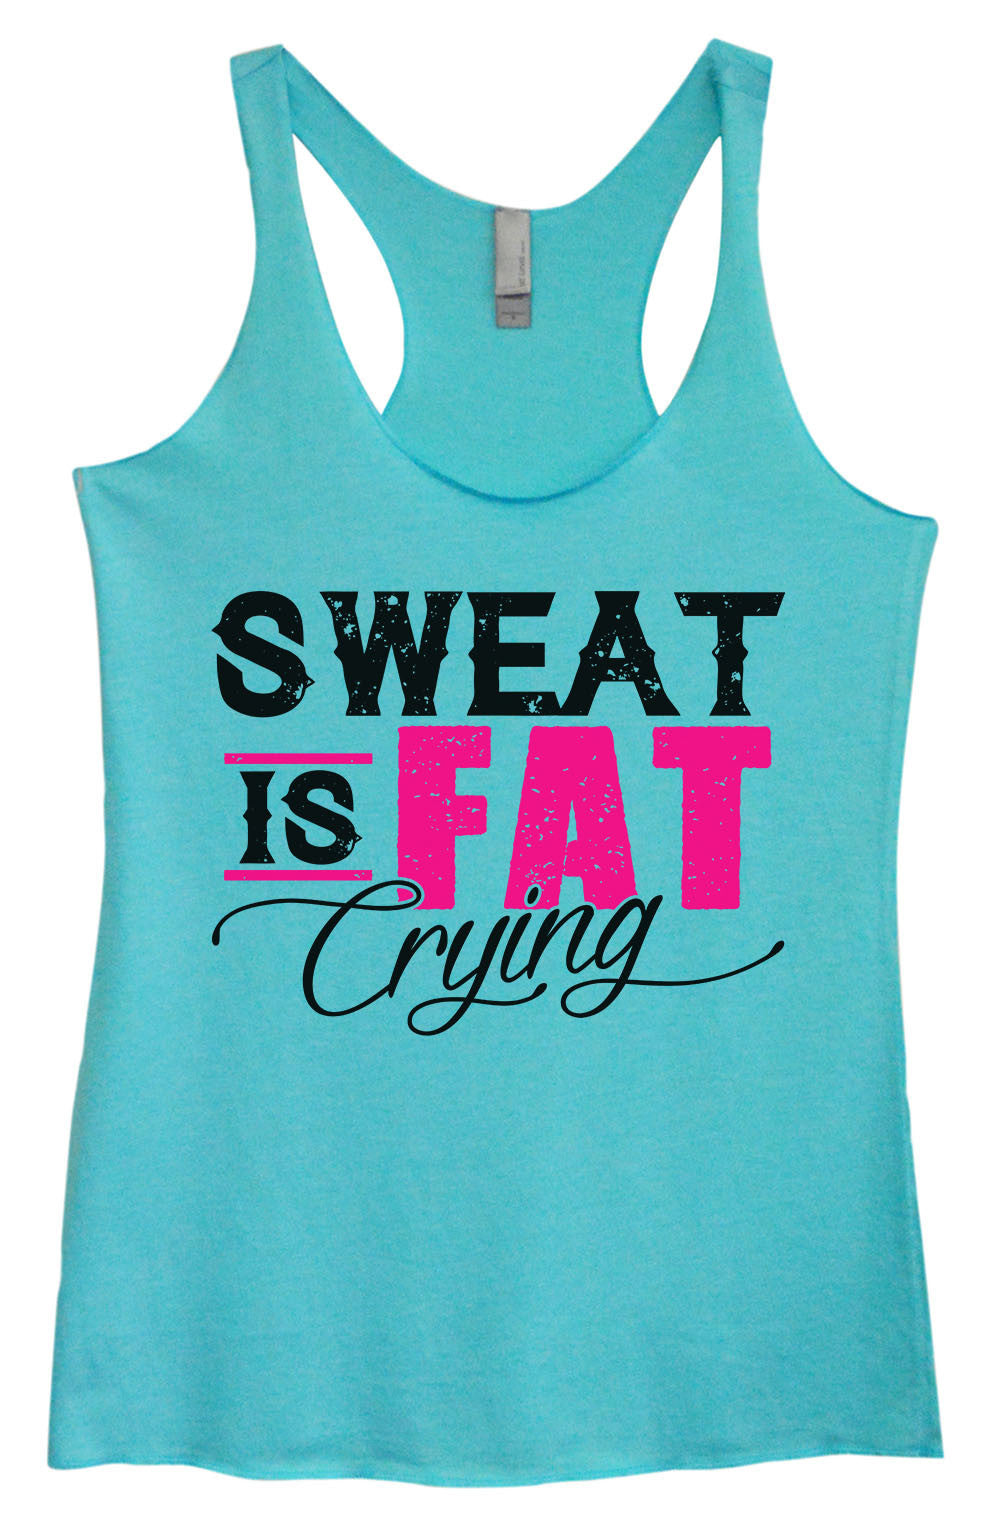 Womens Fashion Triblend Tank Top - Sweat Is Fat Crying - Tri-1426 - Funny Shirts Tank Tops Burnouts and Triblends  - 2